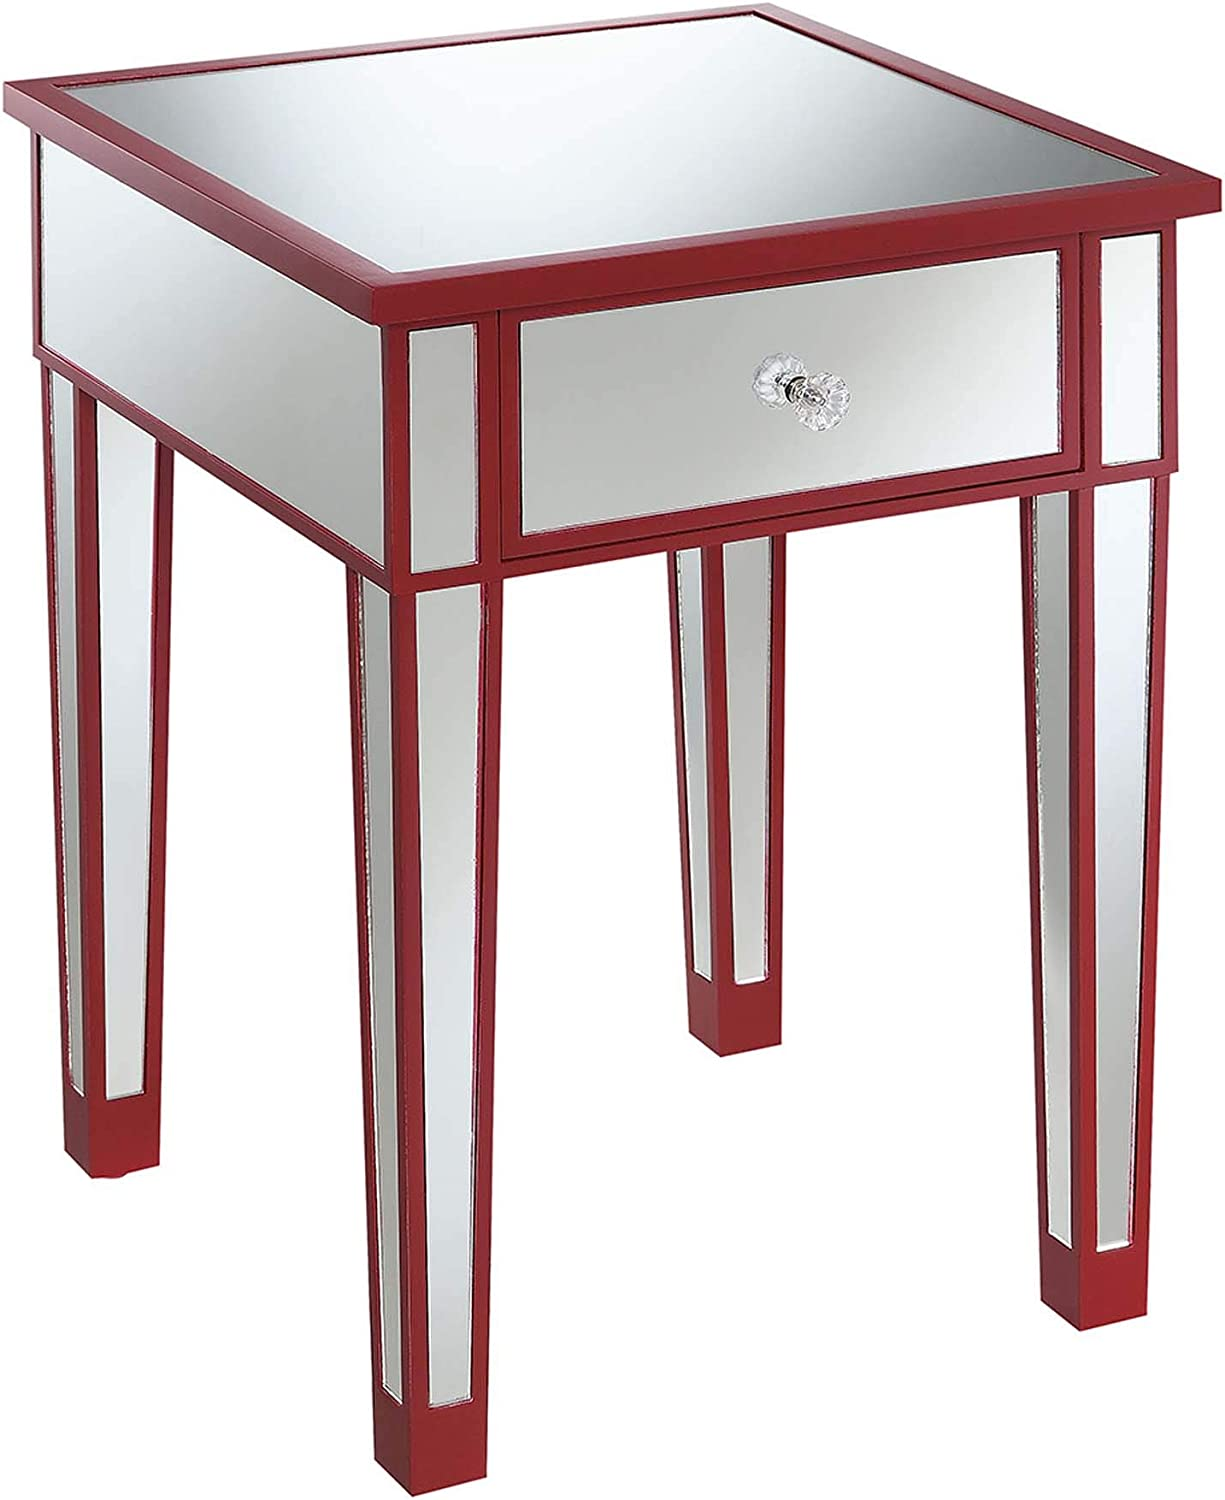 Convenience Concepts Gold Coast Mirrored End Table with Drawer, Cranberry Red / Mirror